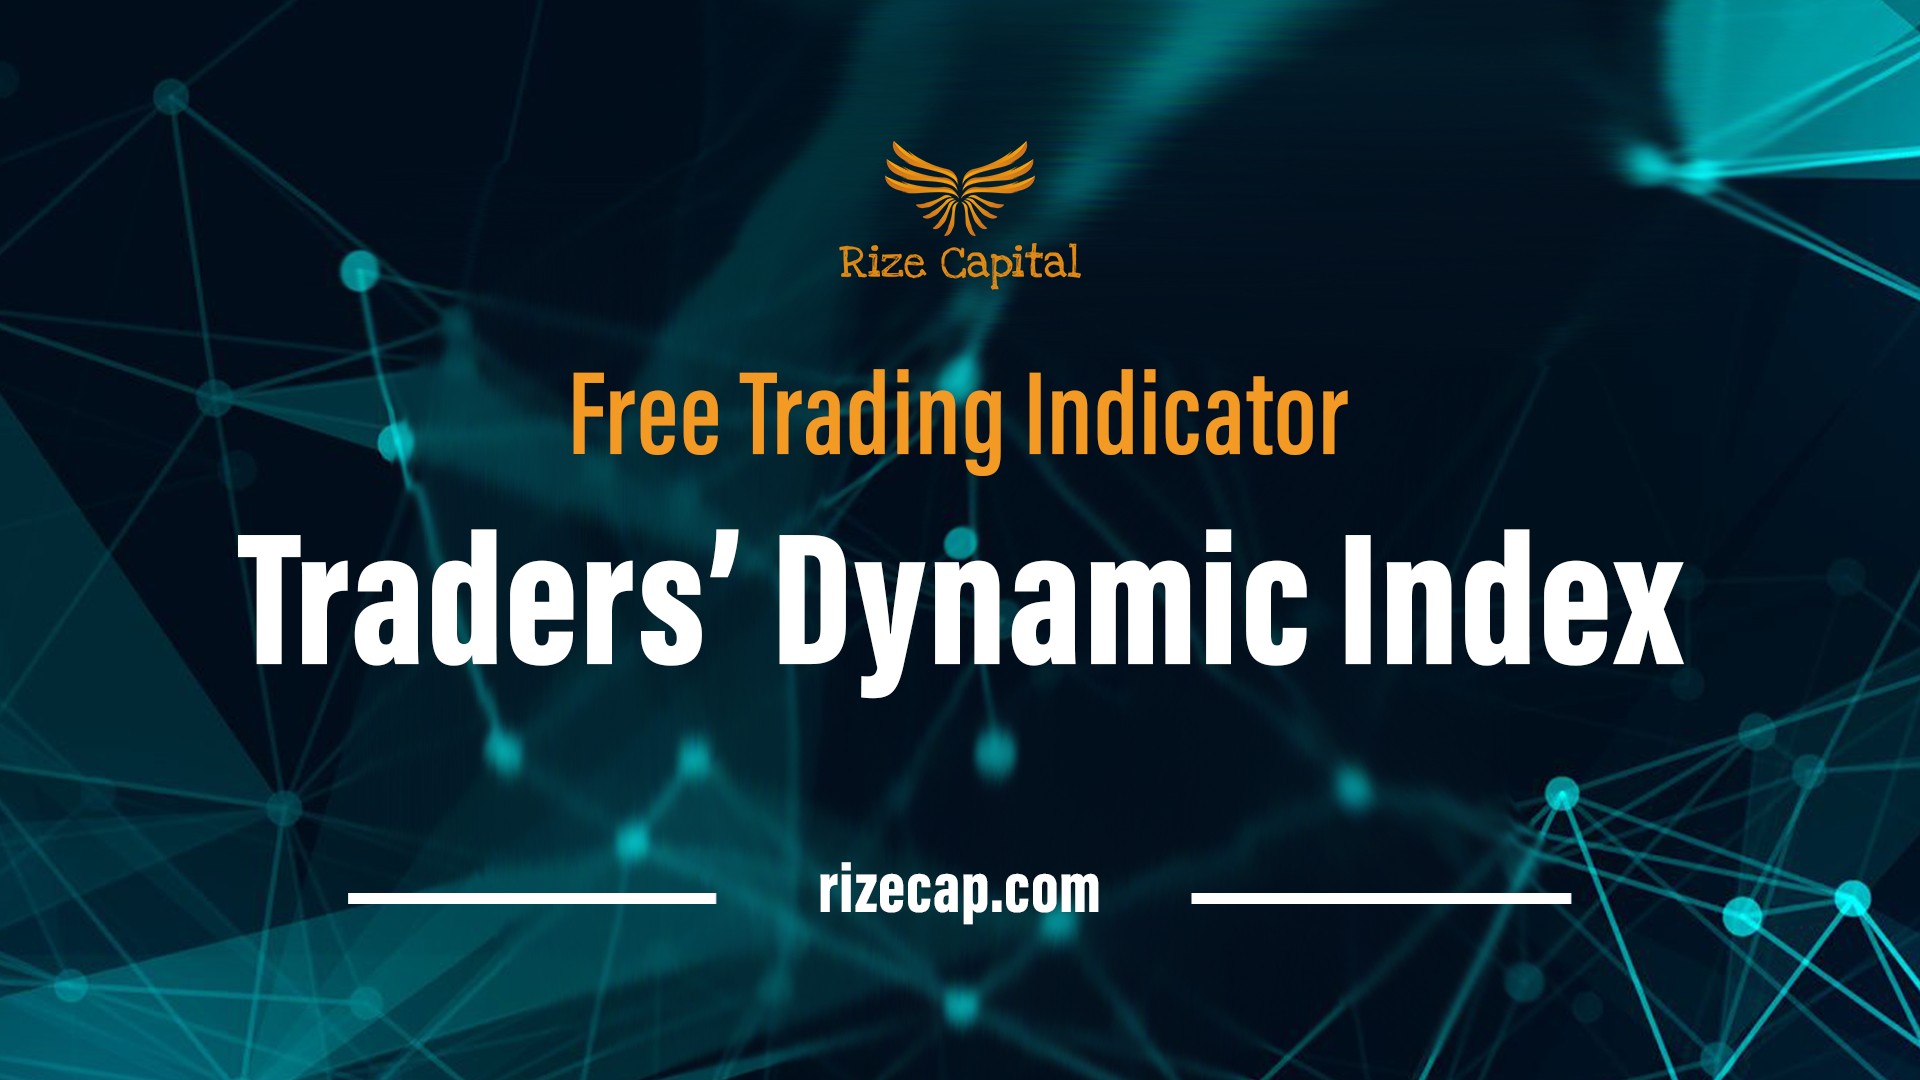 Traders' Dynamic Index Free indicator